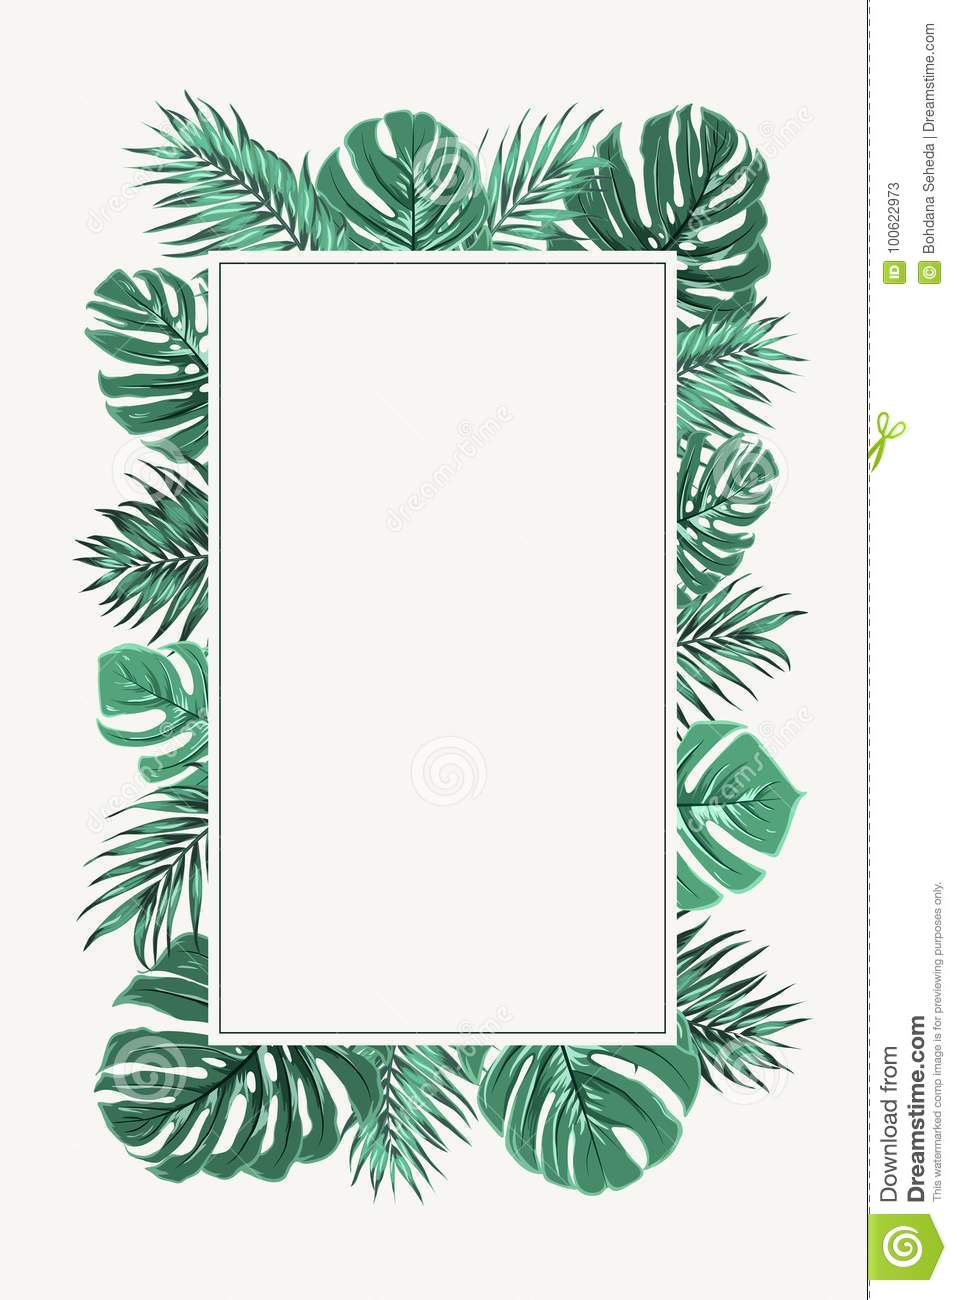 Rectangular Border Frame Green Tropical Leaves Stock Vector Illustration Of Monstera Natural 100622973 (yes, i do 'take requests'!). https www dreamstime com rectangular border frame green tropical leaves template decorated exotic jungle rainforest bright palm tree monstera image100622973